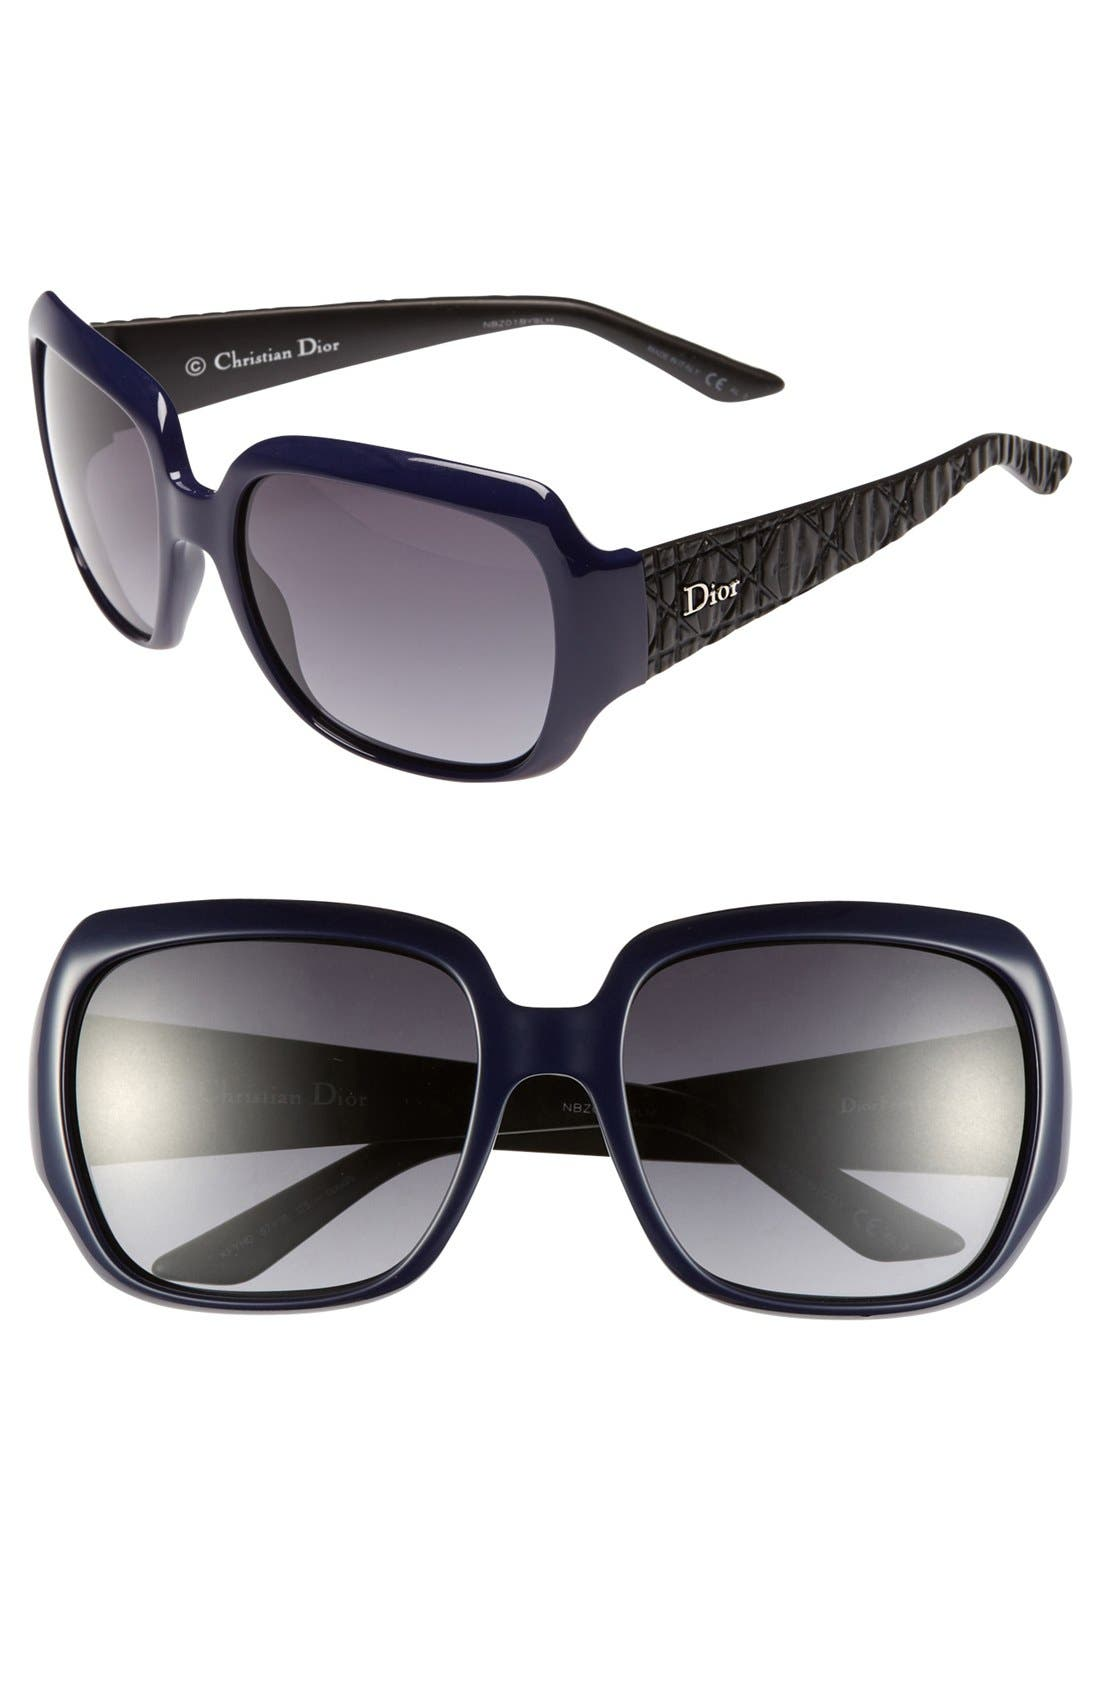 Alternate Image 1 Selected - Dior 'Classic' 57mm Sunglasses